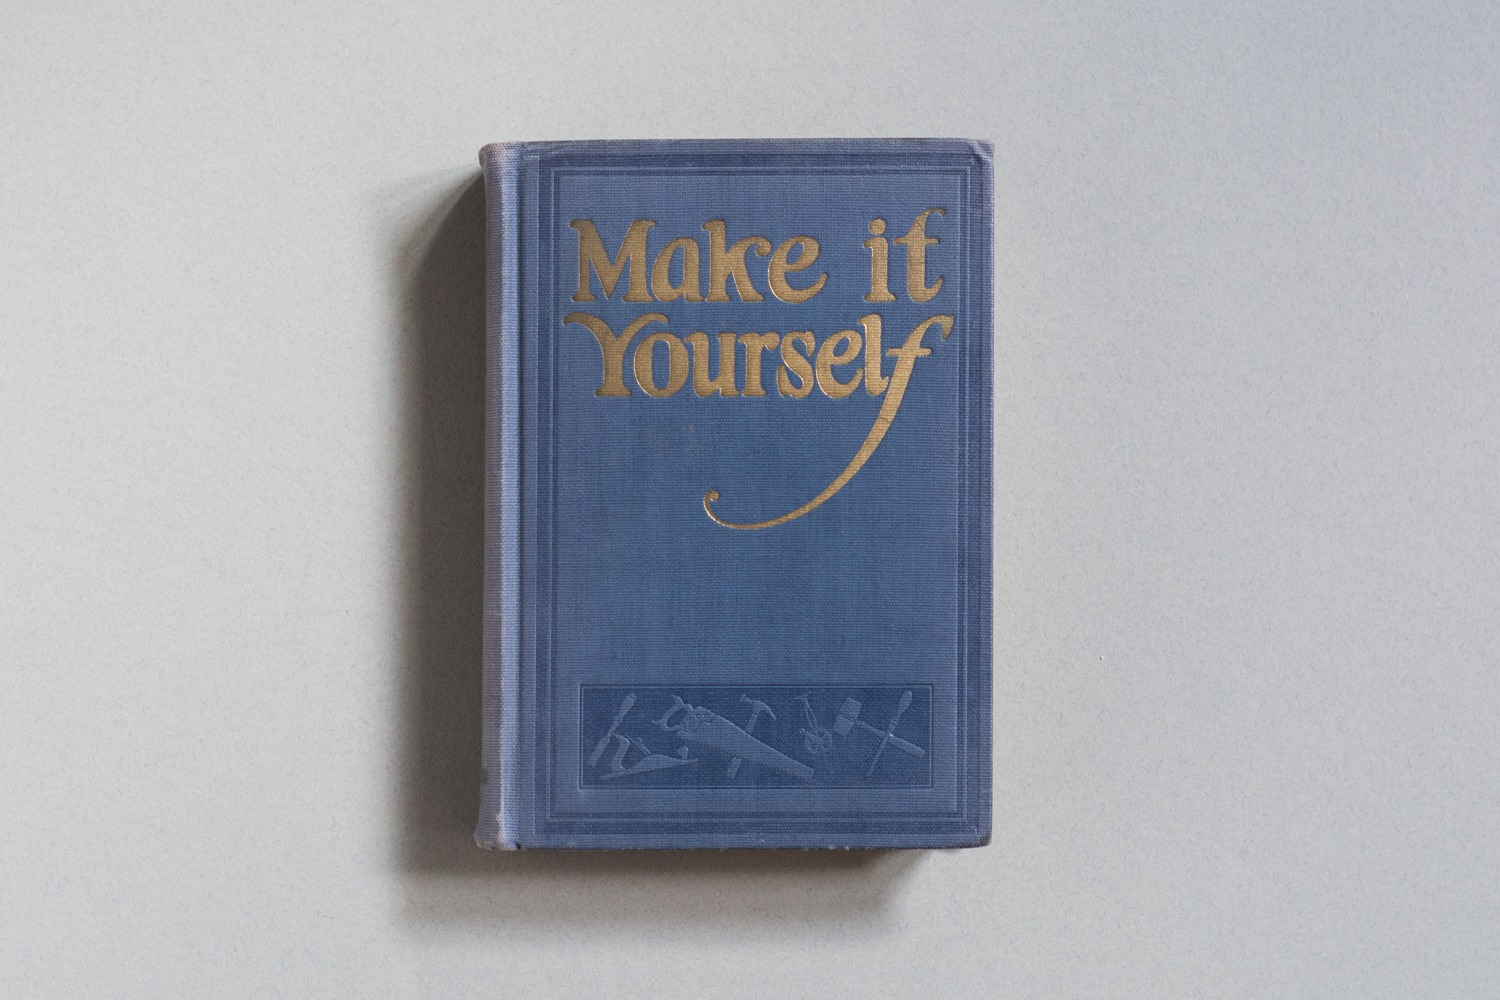 Make It Yourself: 900 Things to Make and Do Book